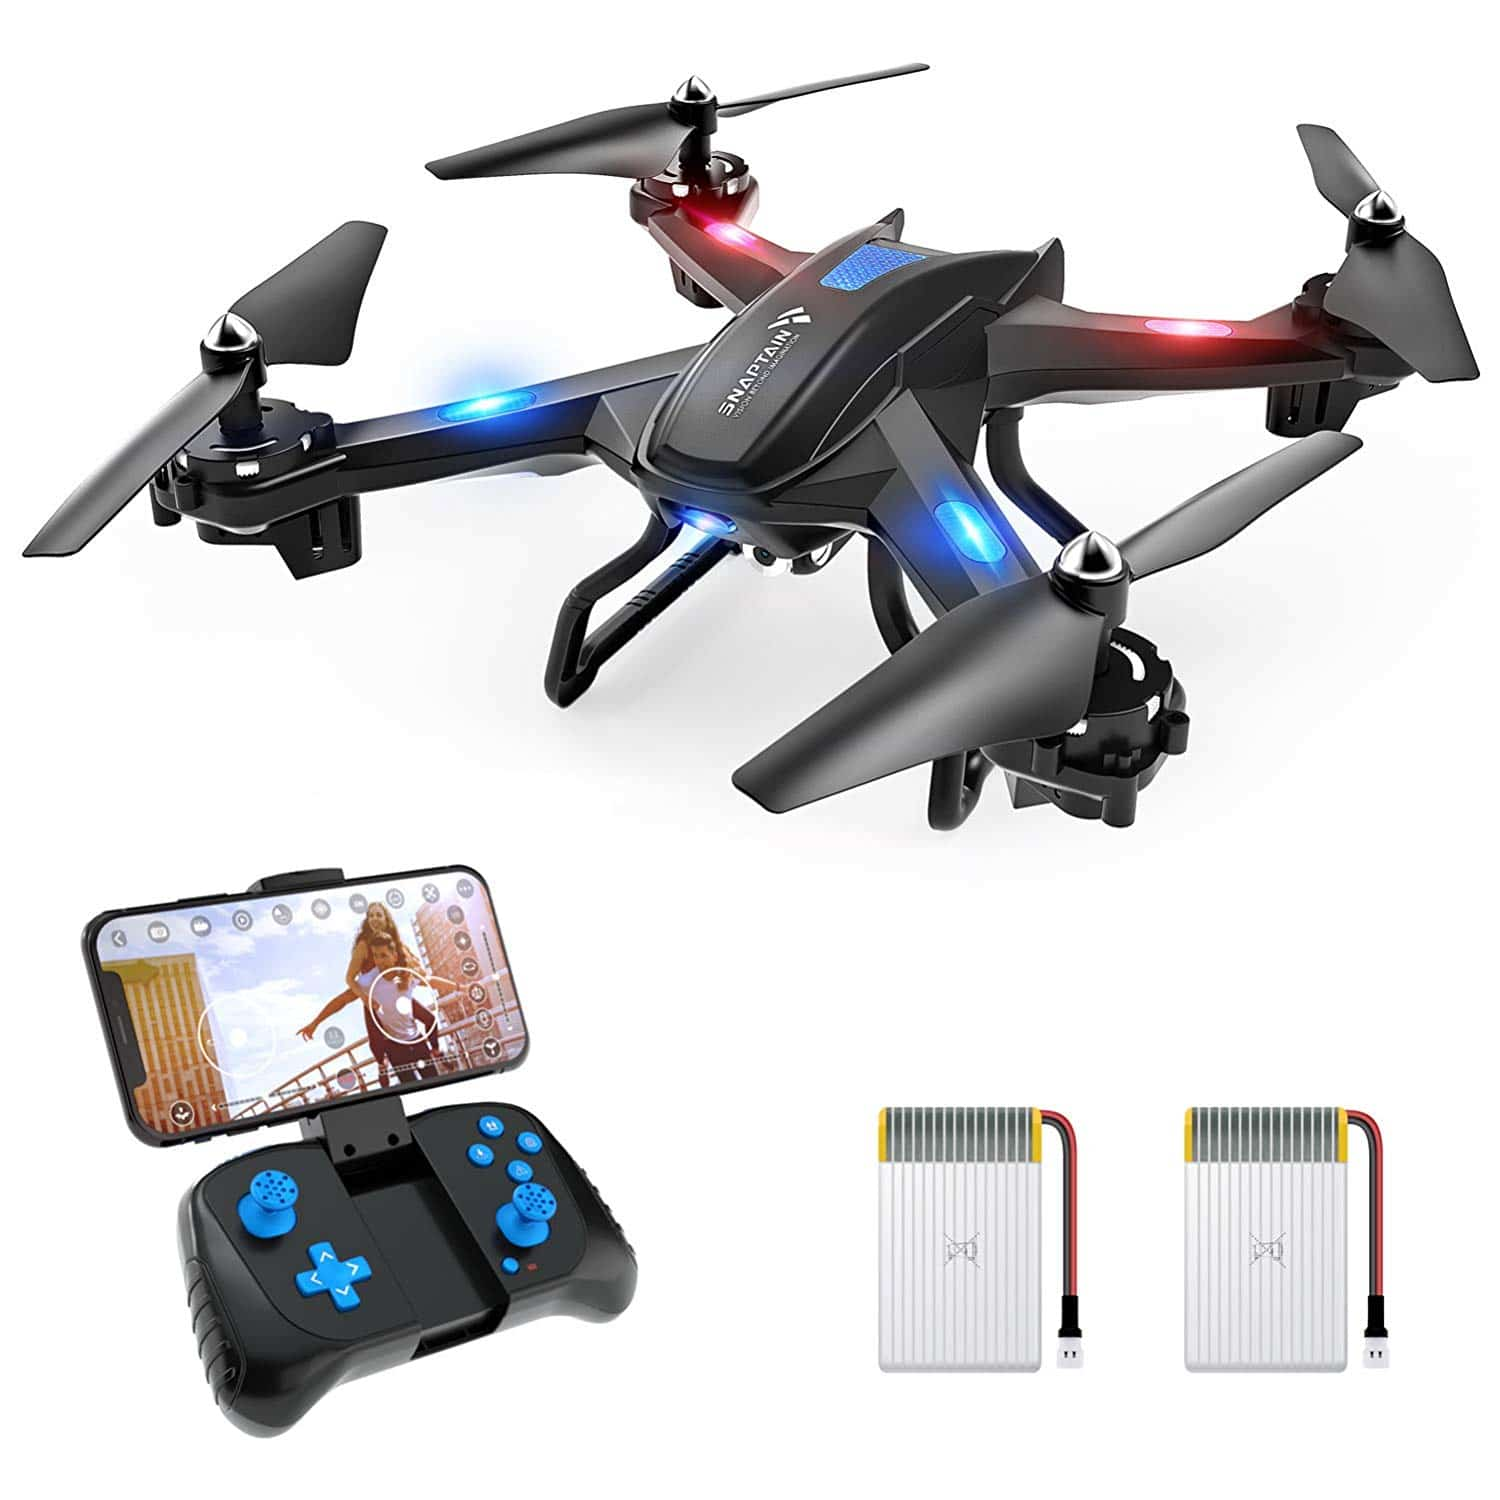 SNAPTAIN S5C wi-fi FPV Drone with 720P HD Camera, Voice Control, Gesture Control RC Quadcopter for Beginners with Altitude Hold, Gravity Sensor, RTF One Key Take Off/Landing, Compatible w/VR Headset